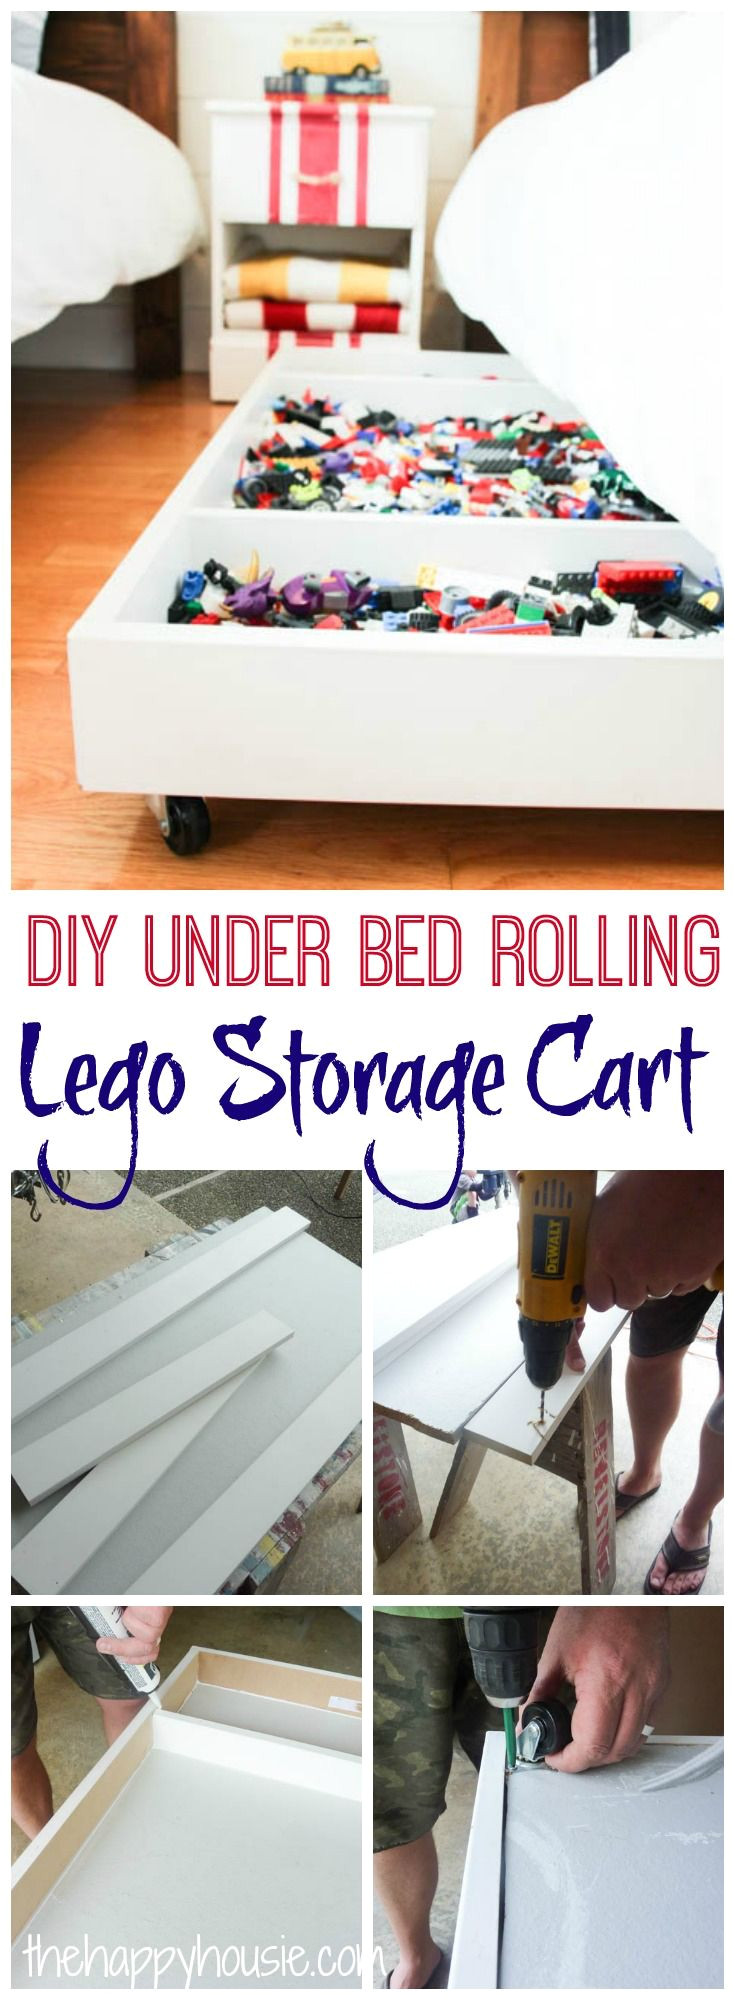 tackle your lego storage issues with this diy under bed rolling lego storage cart